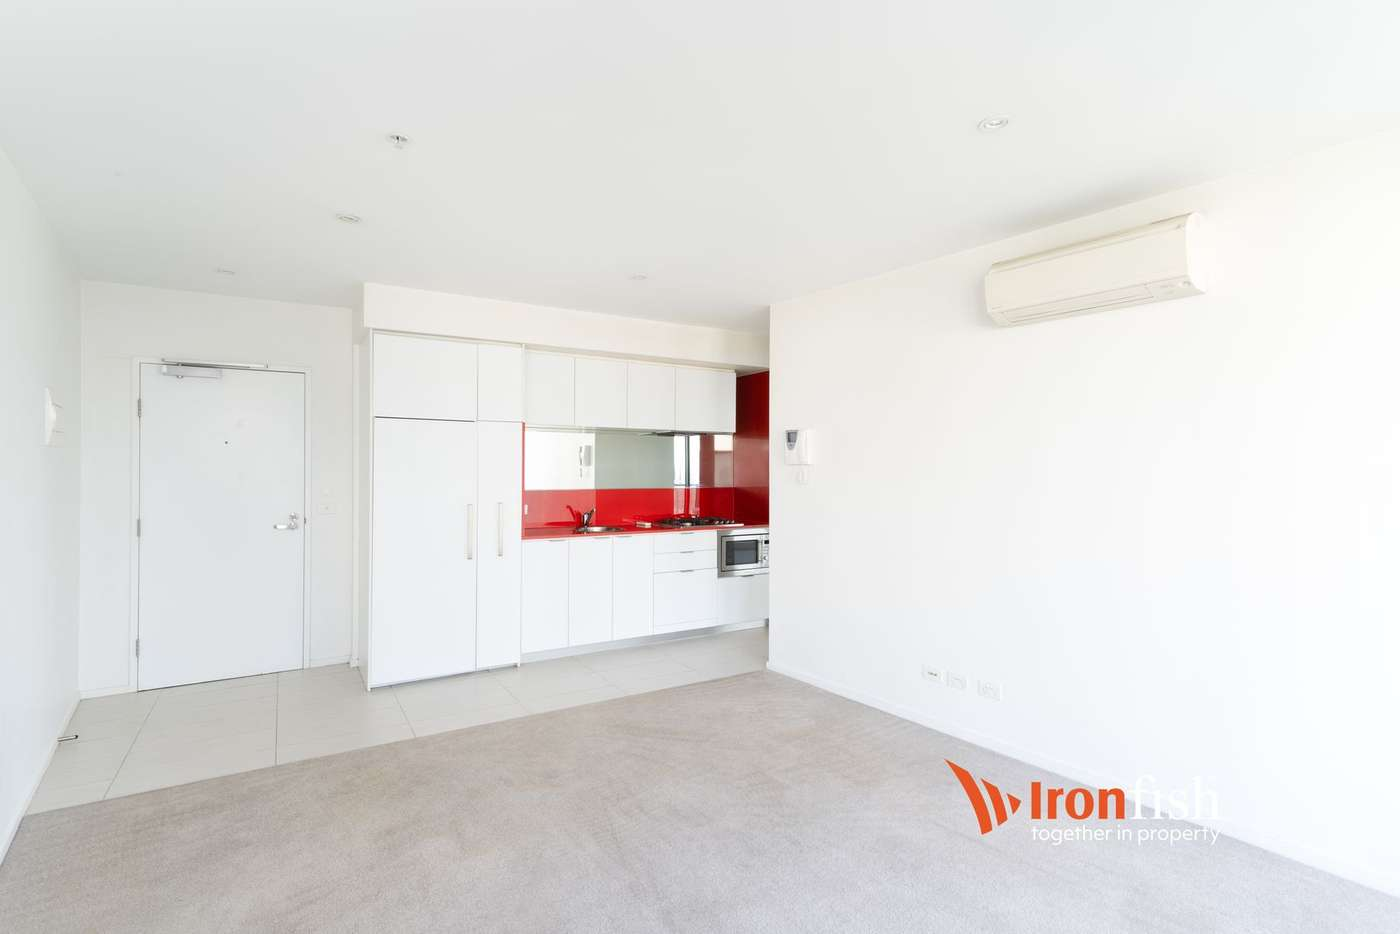 Main view of Homely apartment listing, 1804/46-50 Haig Street, Southbank VIC 3006